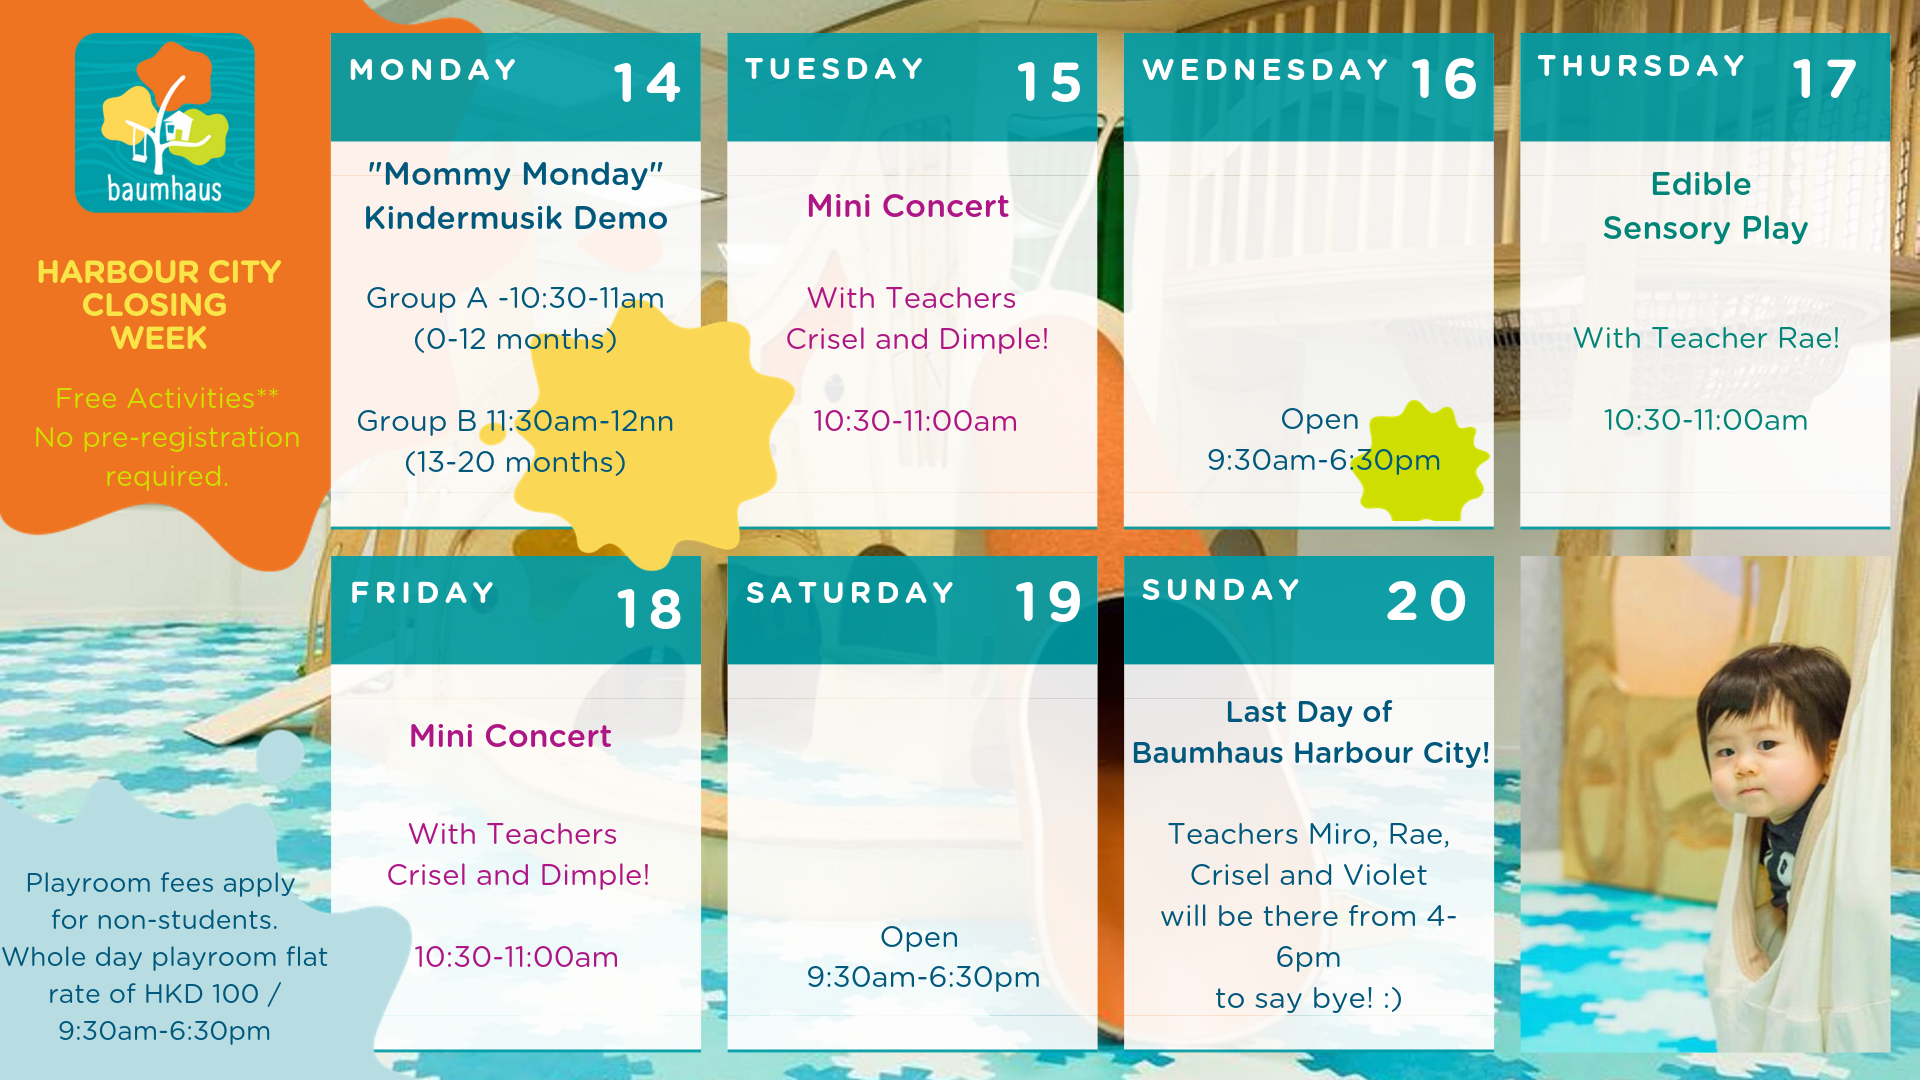 """List of Harbour City Closing Week Activities (14th October to 20th October)  14th Oct (Monday): """"Mommy Monday"""" Kindermusik Demo, Group A (0-12 months) 10:30-11am, Group B (13-20months) 11:30am-12nn  15th Oct (Tuesday) 10:30-11am: Mini Concert  16th Oct (Wednesday) open at 9:30am-6:30pm  17th Oct (Thursday) 10:30-11am: Edible Sensory Play  18th Oct (Friday) 10:30-11am: Mini Concert  19th Oct (Saturday) open at 9:30am-6:30pm  20th Oct (Sunday) 4-6pm: Last Day of Baumhaus Harbour City  Free Activities** No pre-registration required.  Playroom fees apply for non-students. Whole day playroom flat rate of HKD 100/ 9:30am-6:30pm"""